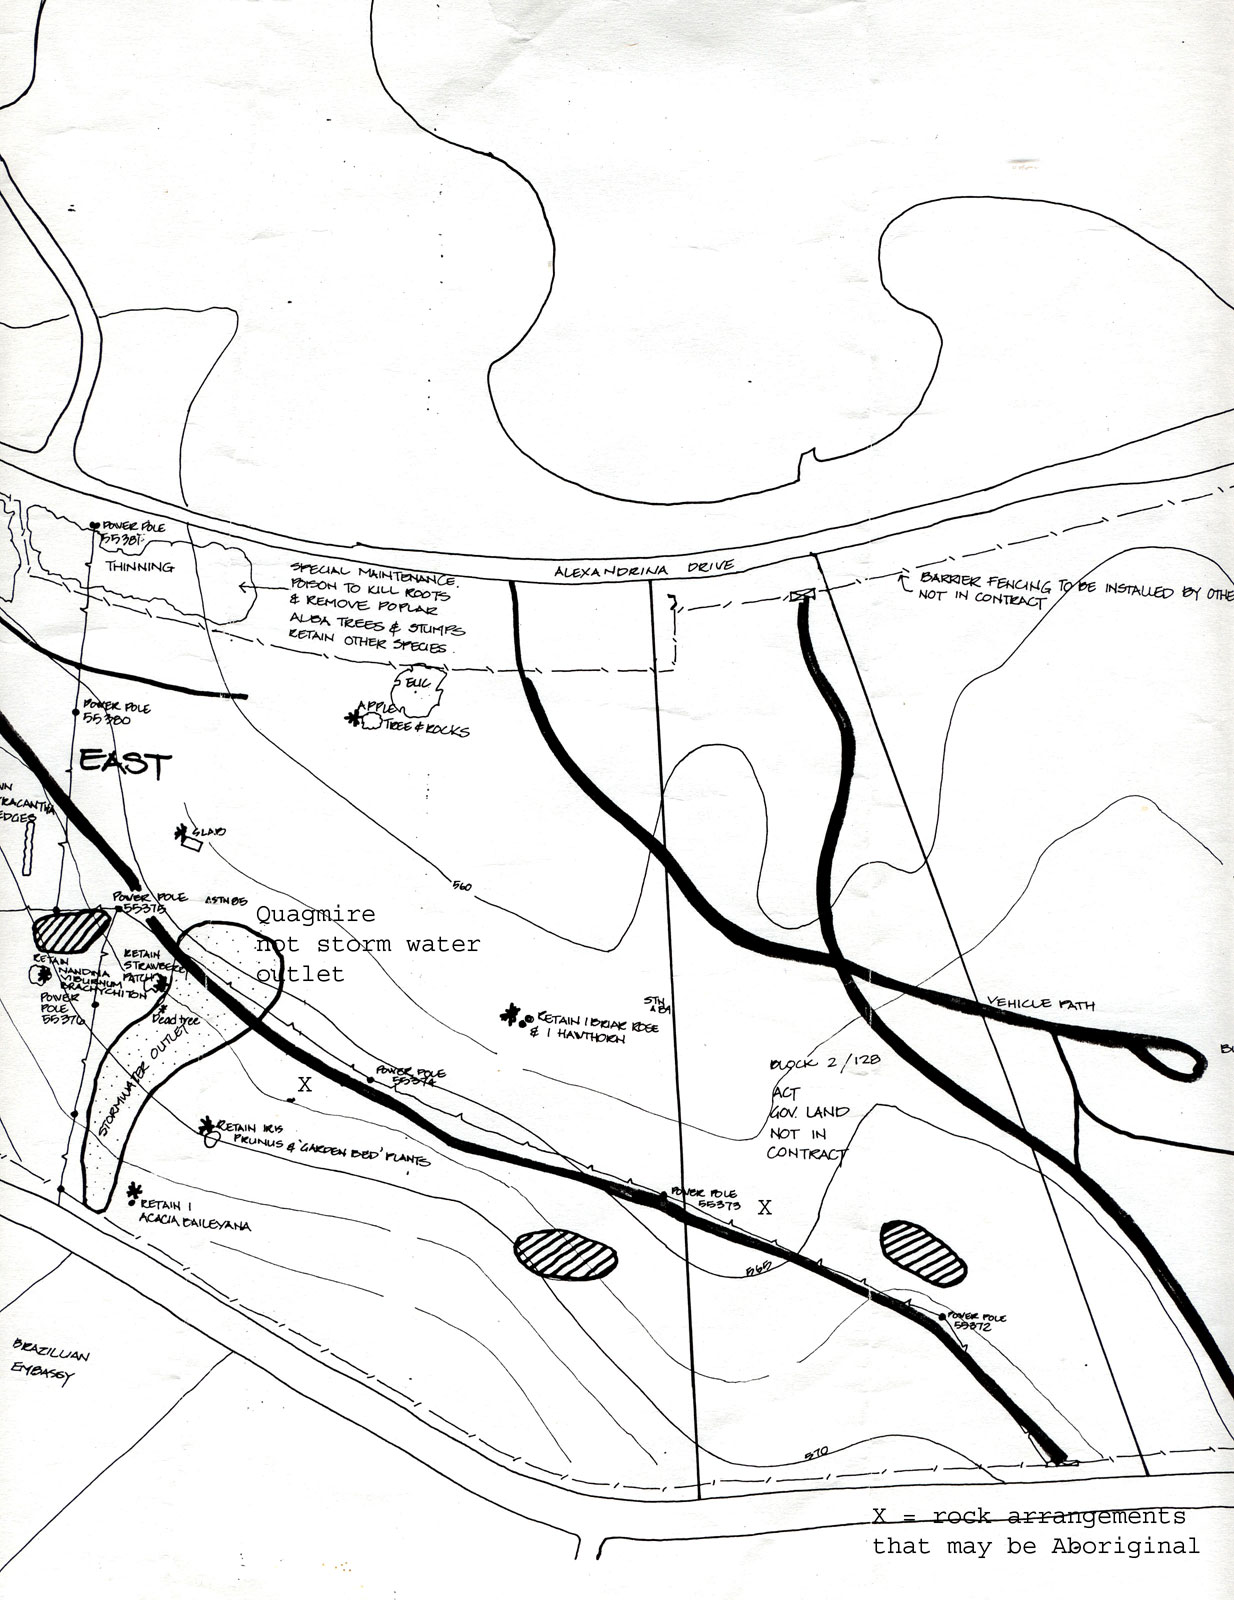 NCA map bla 2 & 3 Sec 128 Stirling Park